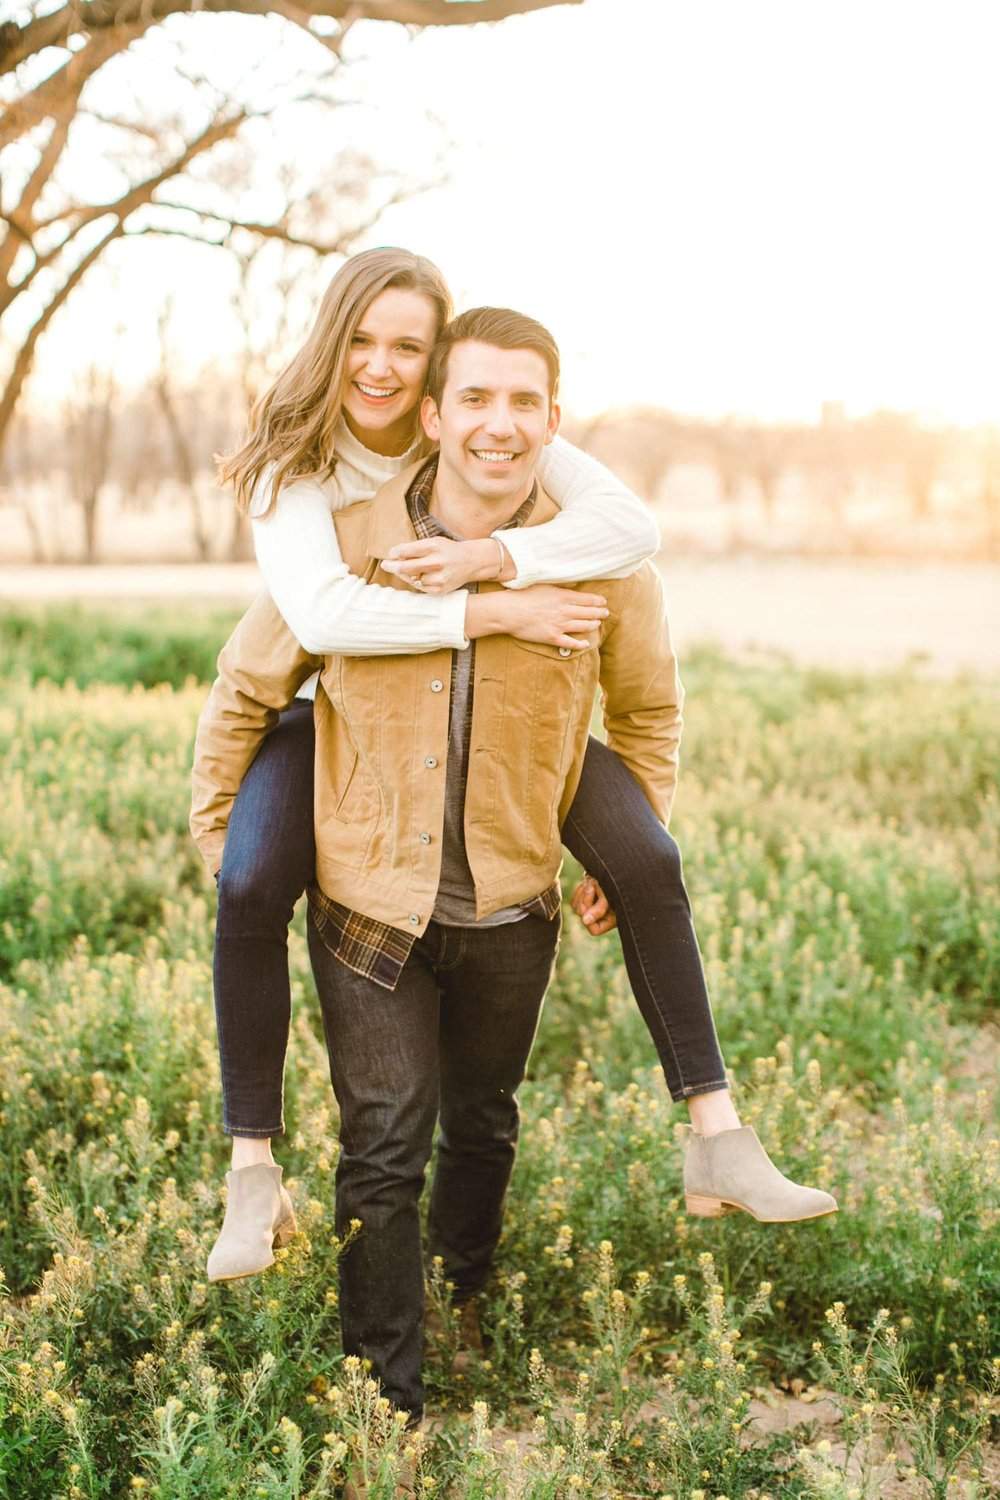 CAROLINE+CHRISTIAN+ALLEEJ+ENGAGEMENTS+LUBBOCK+WEDDING+PHOTOGRAPHER+FIRST+BAPTIST+CHURCH_0050.jpg